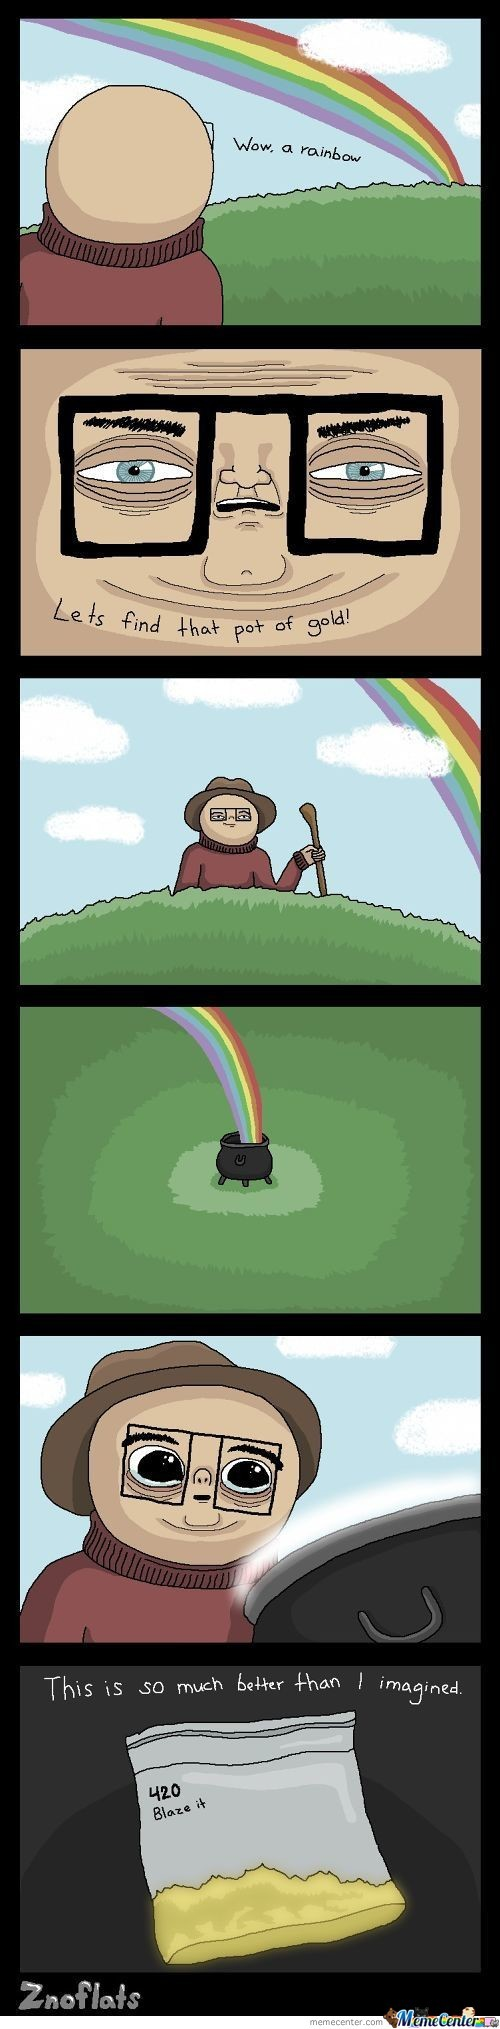 """pot"" Of Gold, Haha"